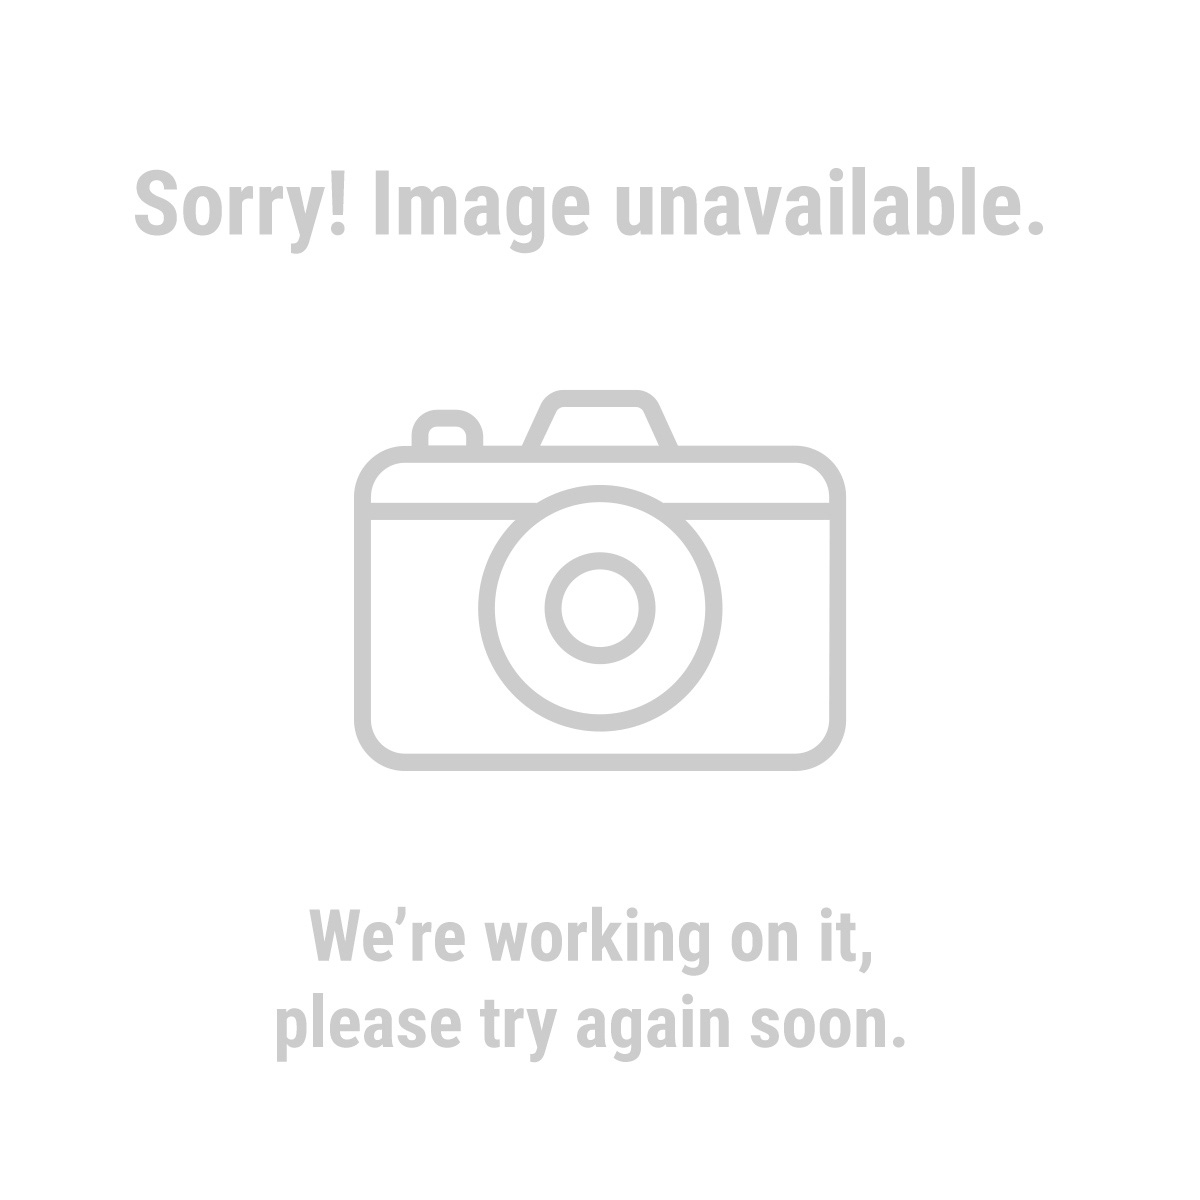 HARDY 62526 Professional Mechanic's Gloves X-Large